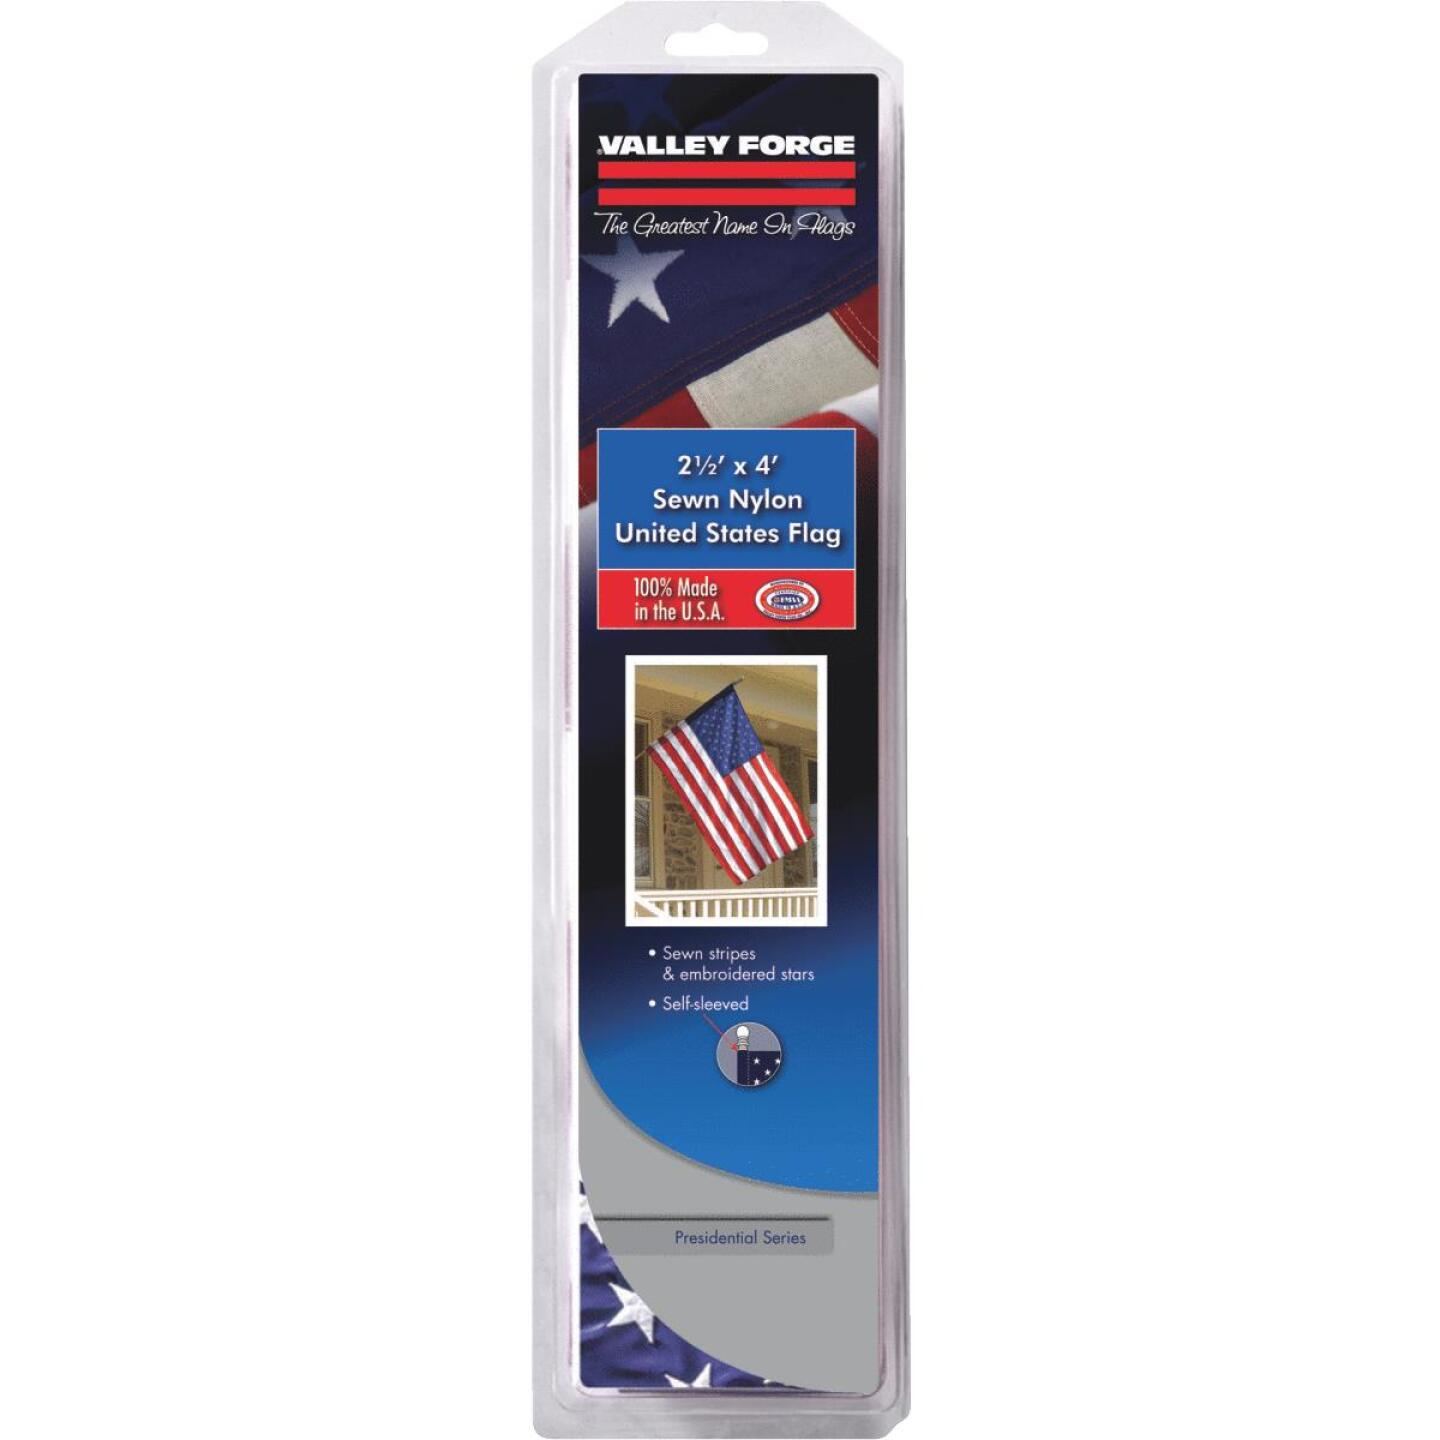 Valley Forge 2.5 Ft. x 4 Ft. Nylon Presidential Series American Flag Image 2